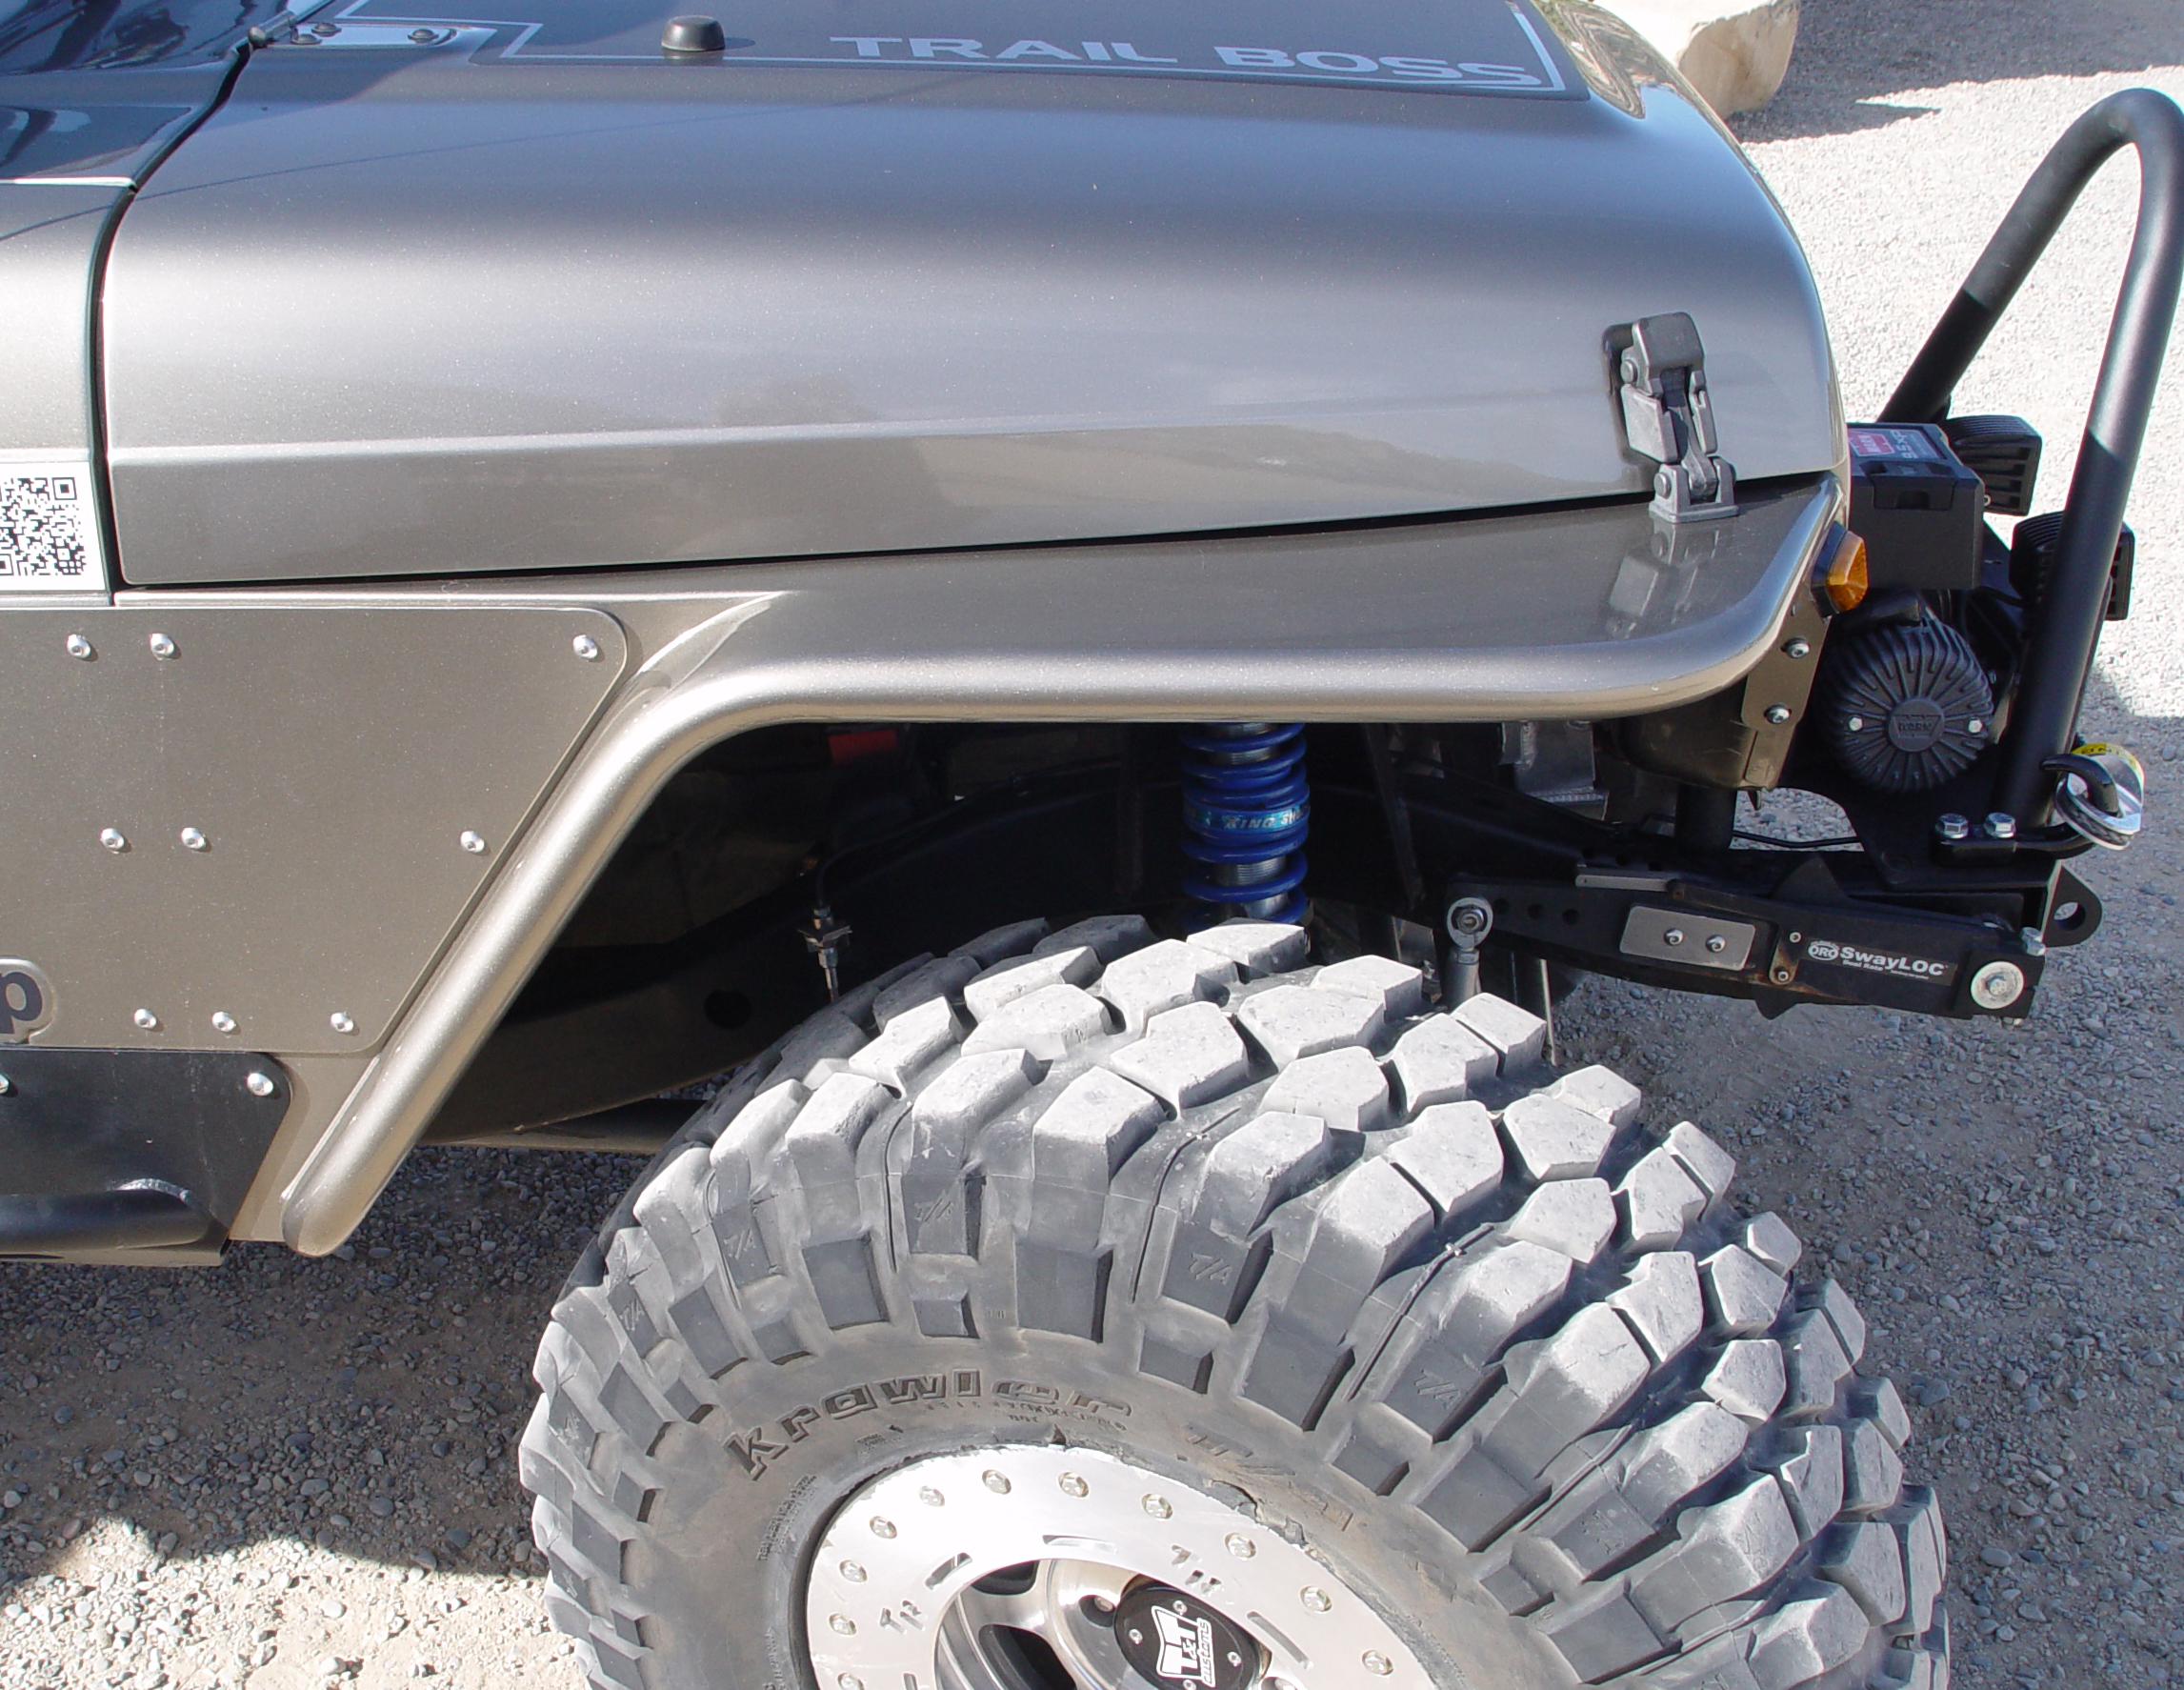 Jeep Tj Tube Fenders 45 Inch Flare 97 06 Wrangler Lj Tnt Customs Parts Accessories Soft Tops From The Side View